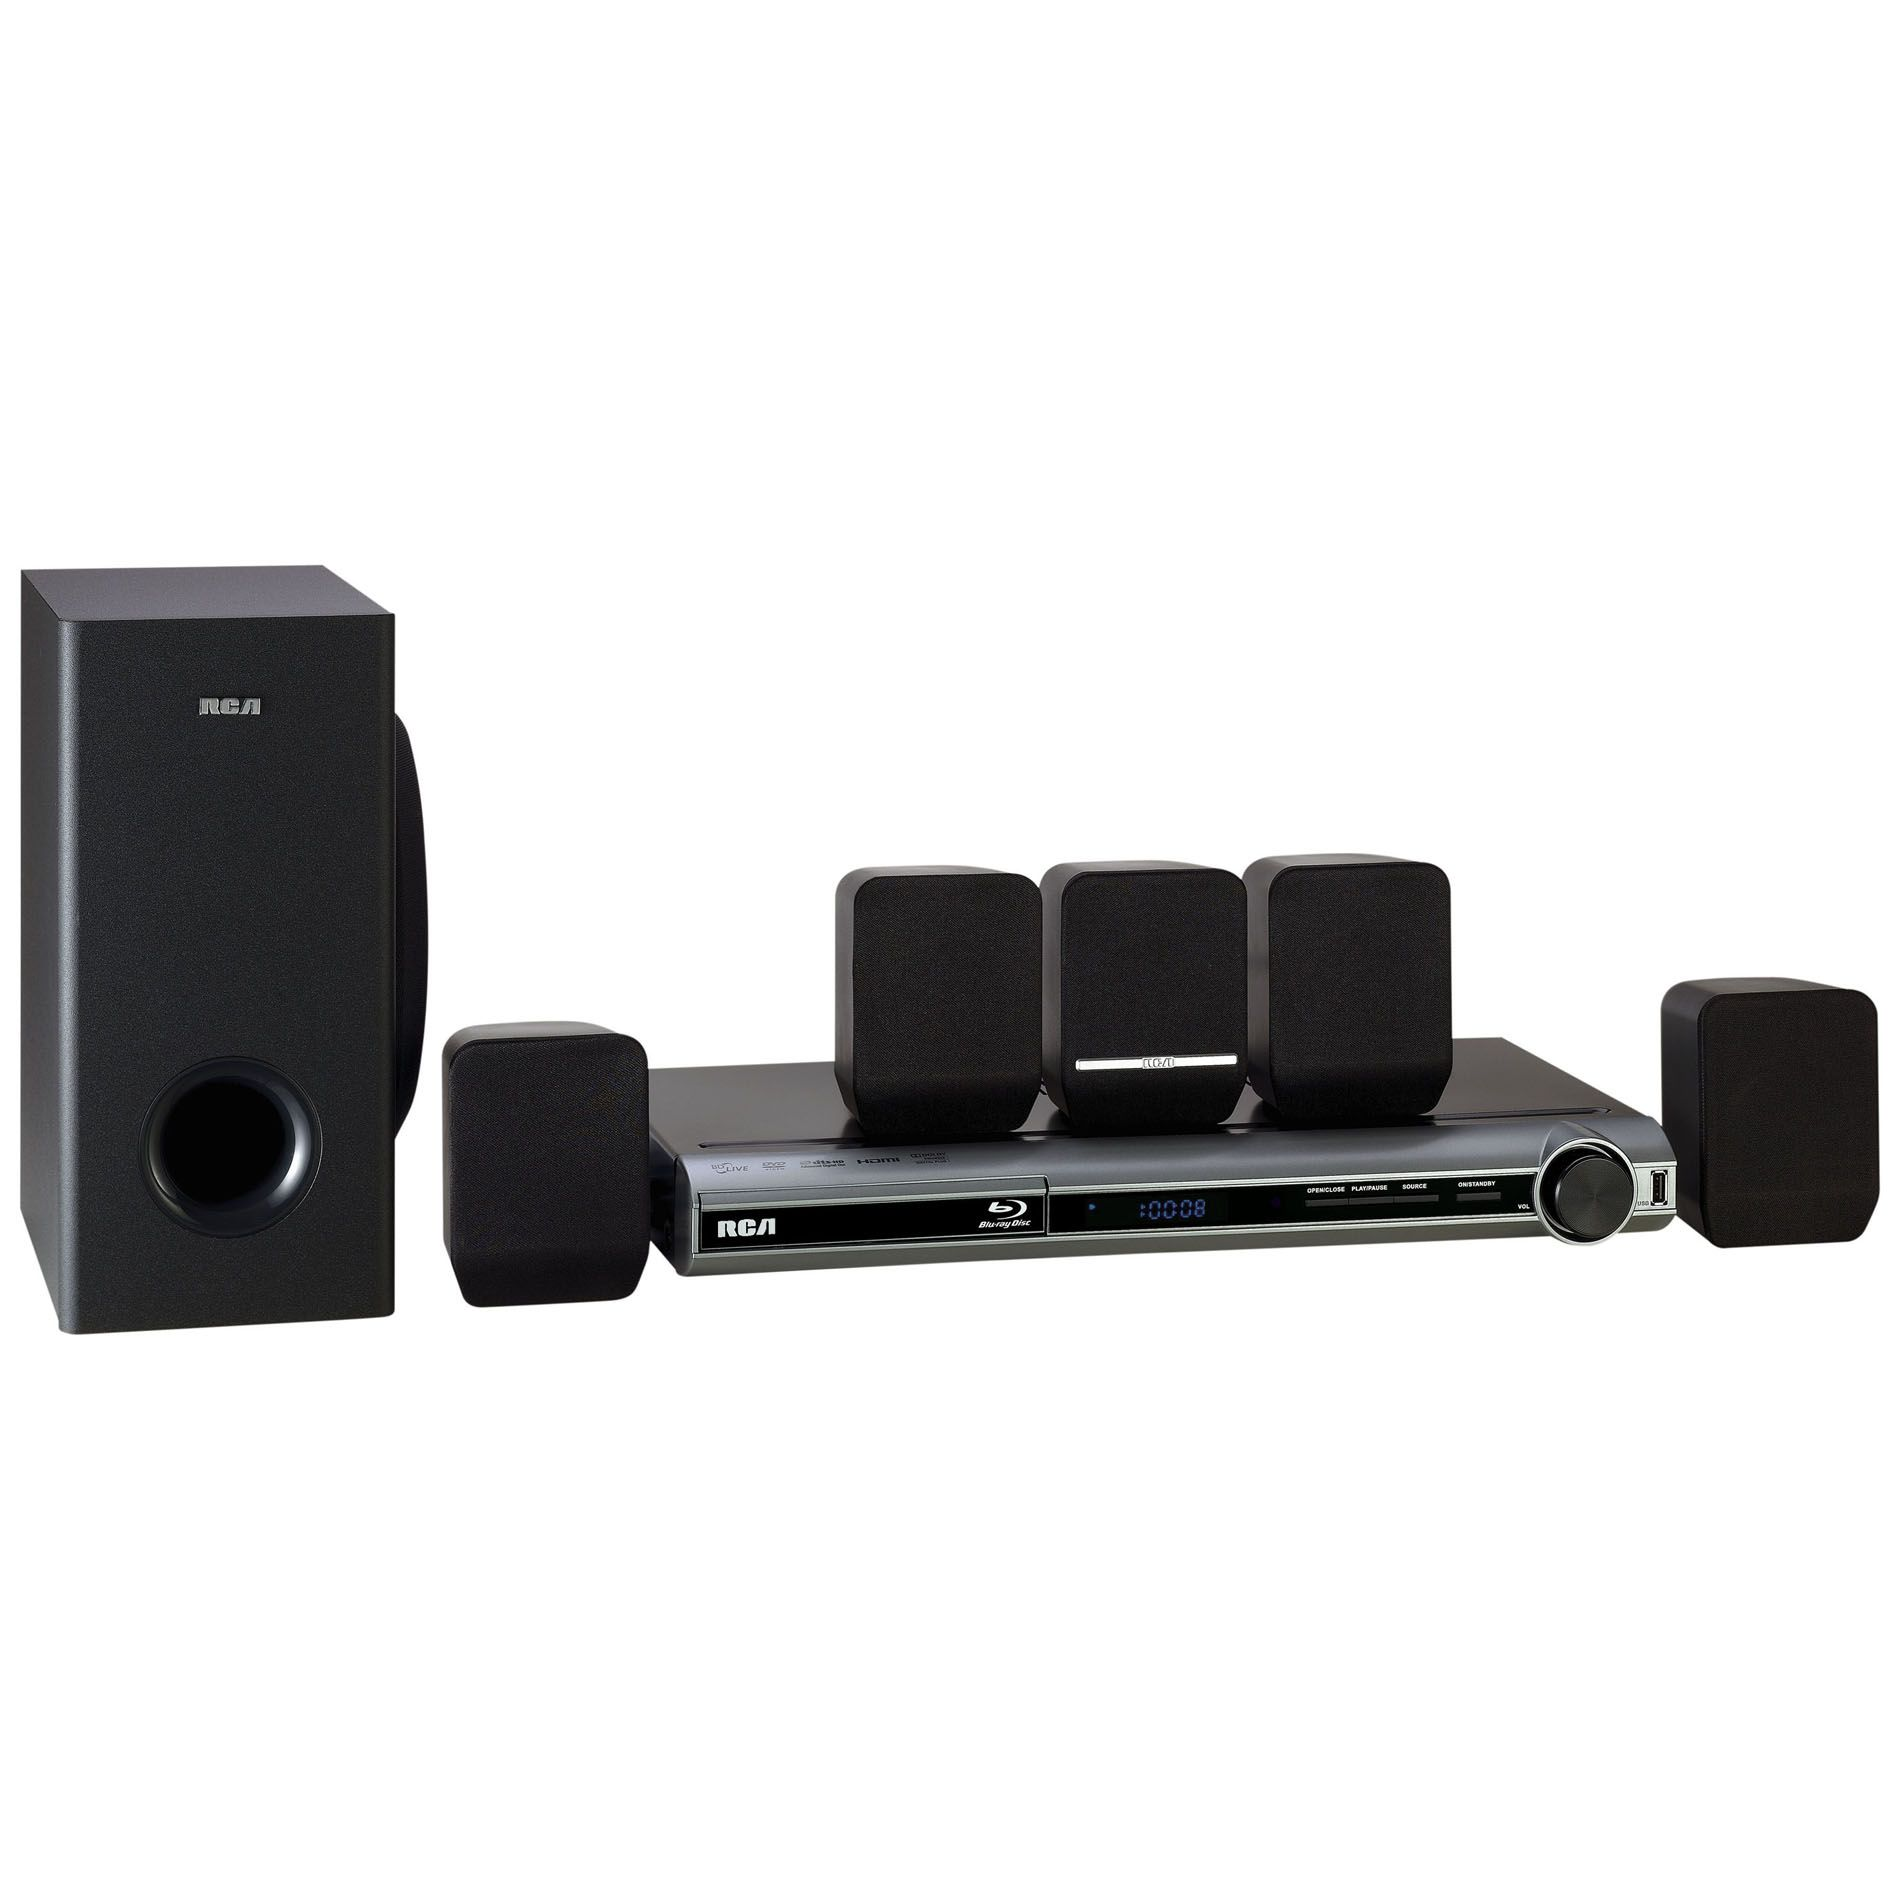 Home Theater & Audio at mygofer.com